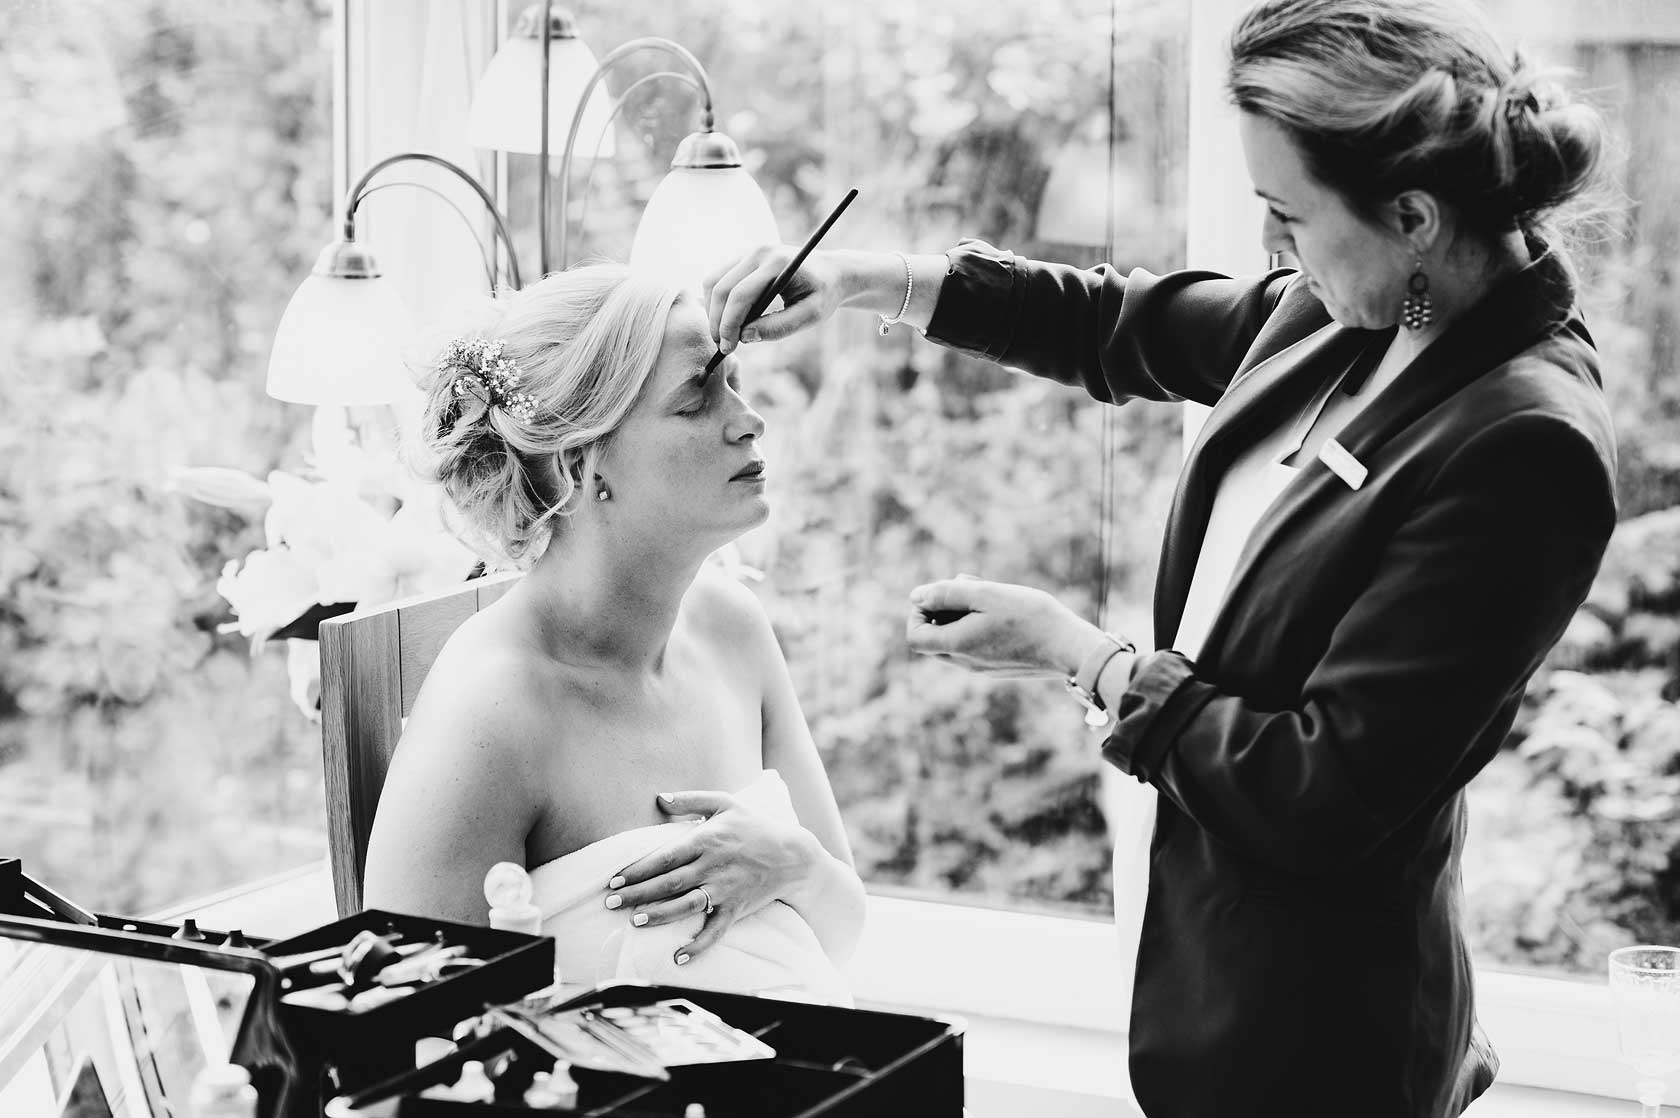 Reportage Wedding Photography at Eccleston Village Hall